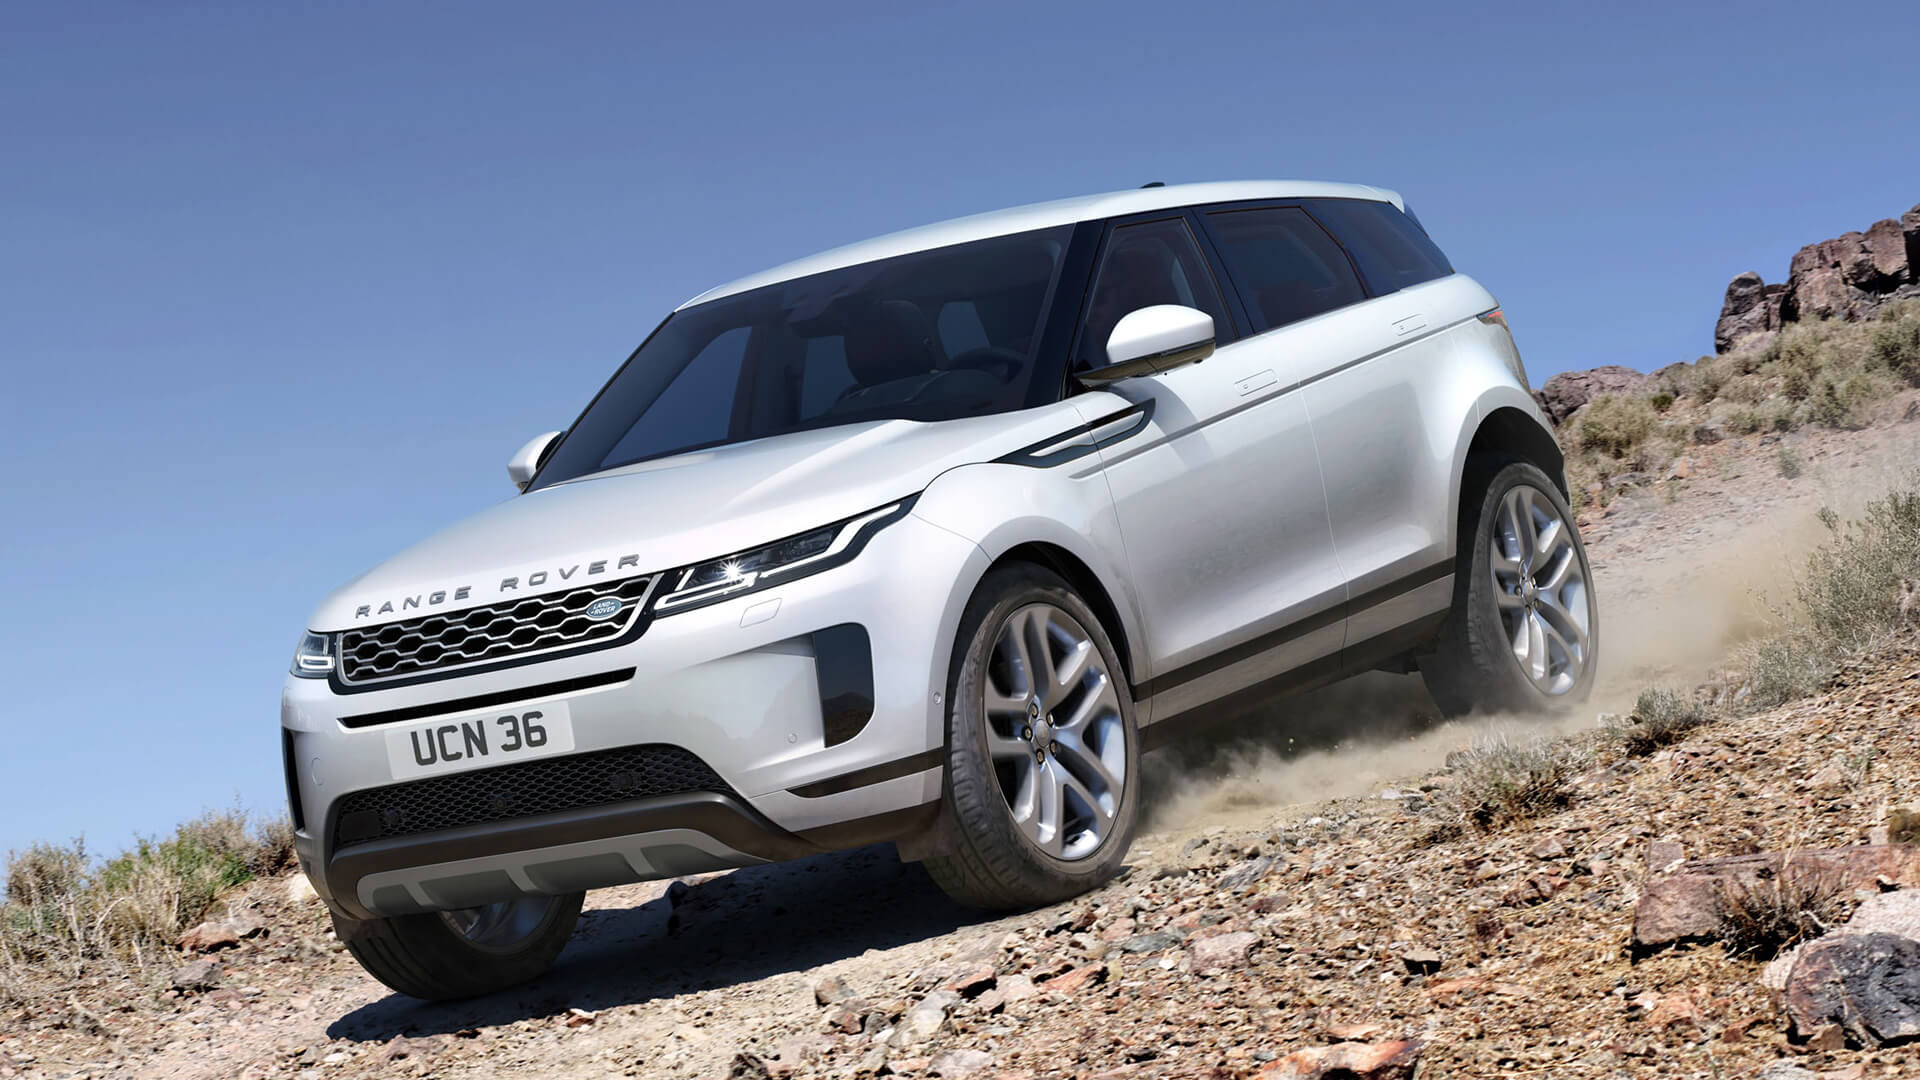 land rover unveils the new tech laden range rover evoque suv. Black Bedroom Furniture Sets. Home Design Ideas